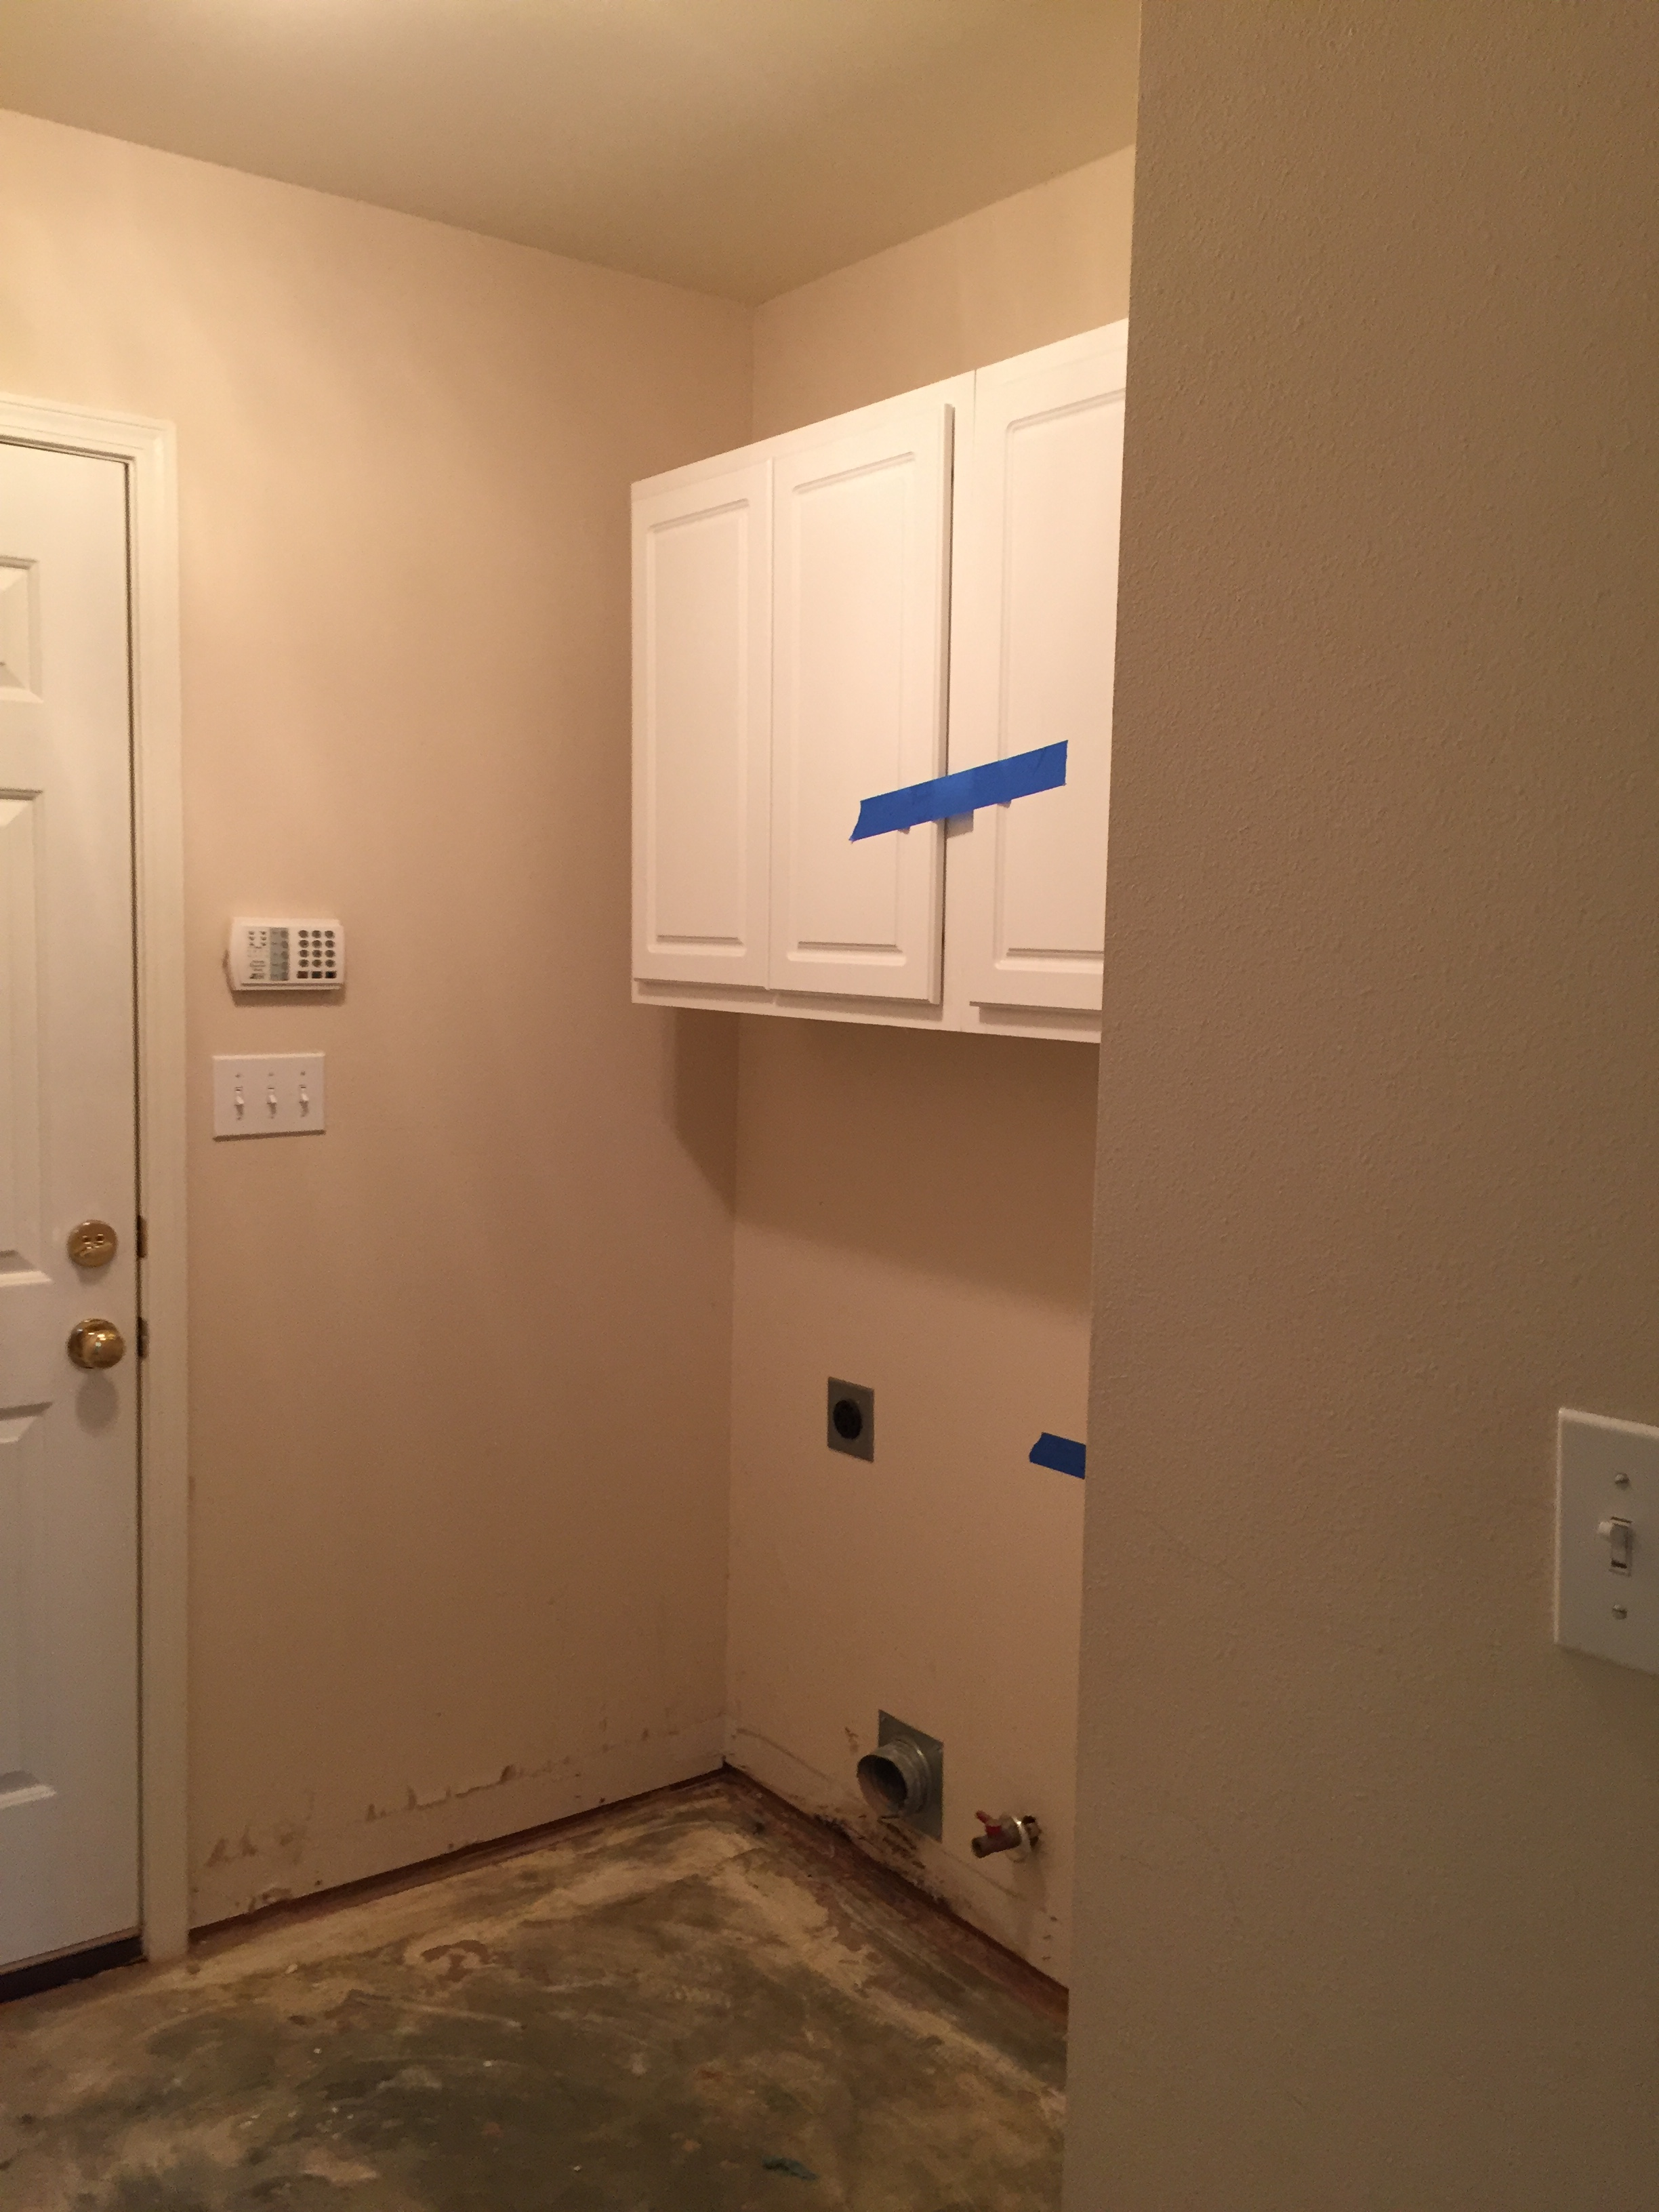 Bathroom Remodeling Bossier City demo day in bossier city [bathroom remodel] | jeb design build